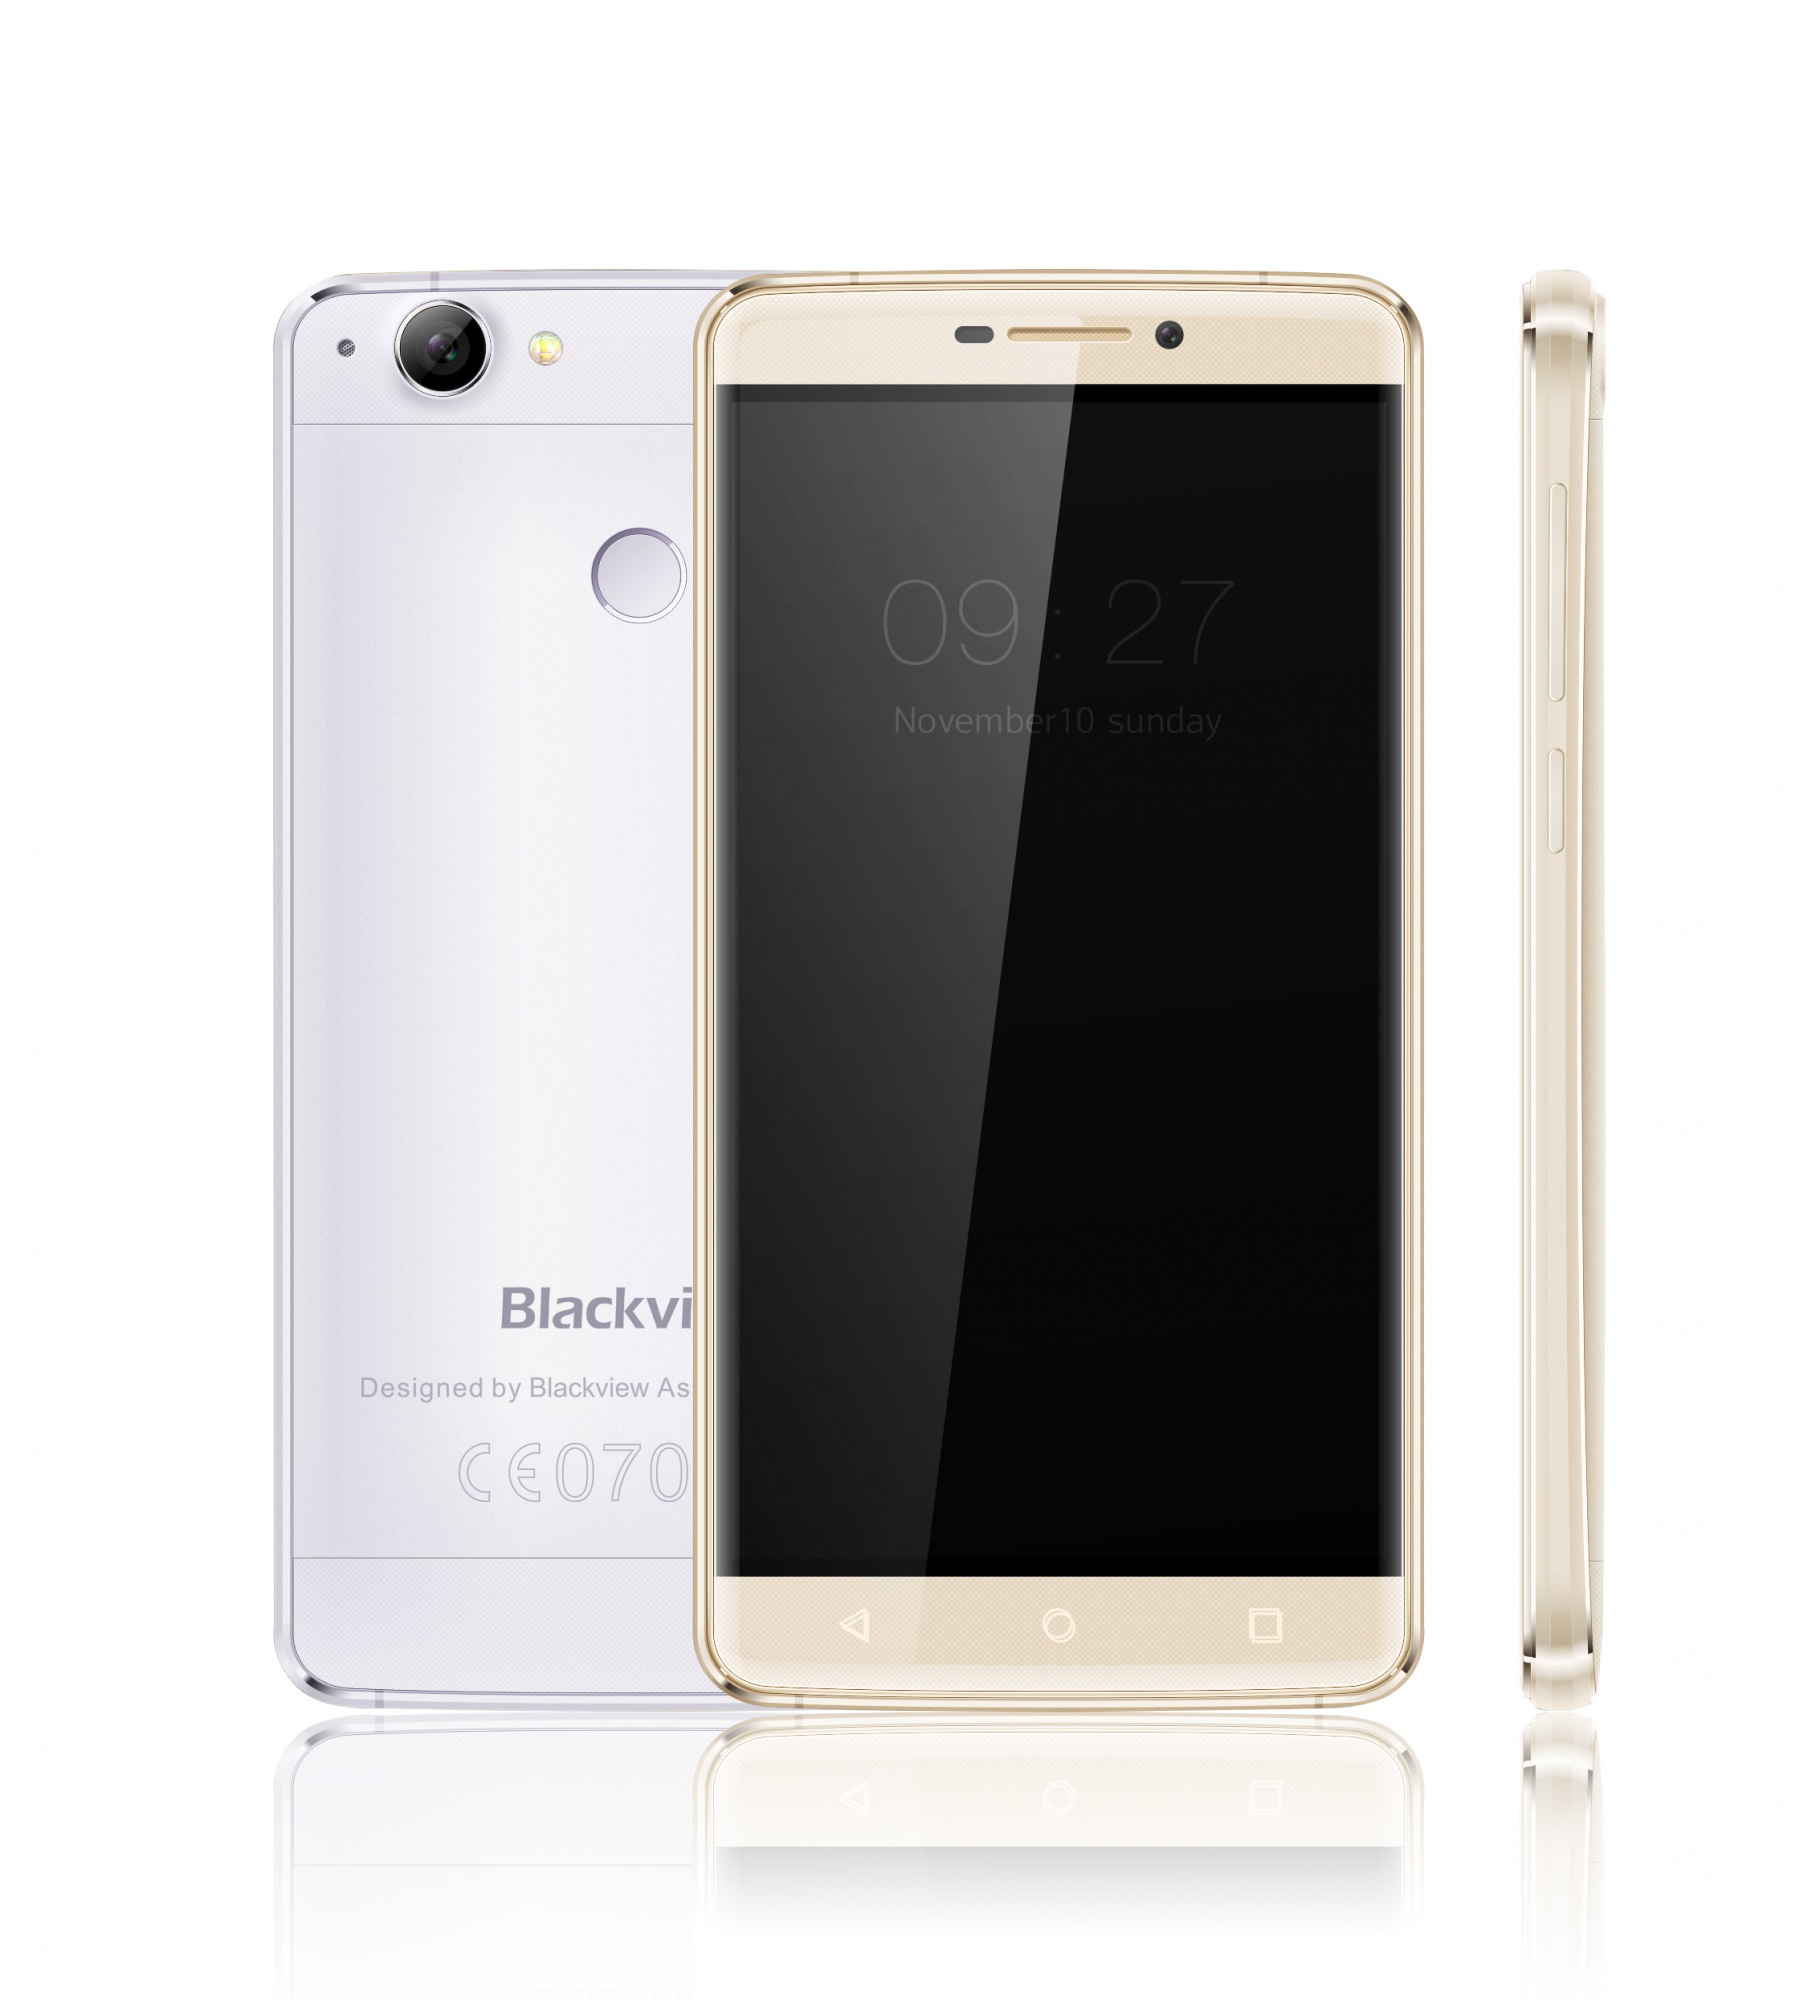 Blackview R7, the Flagship Product in 2016